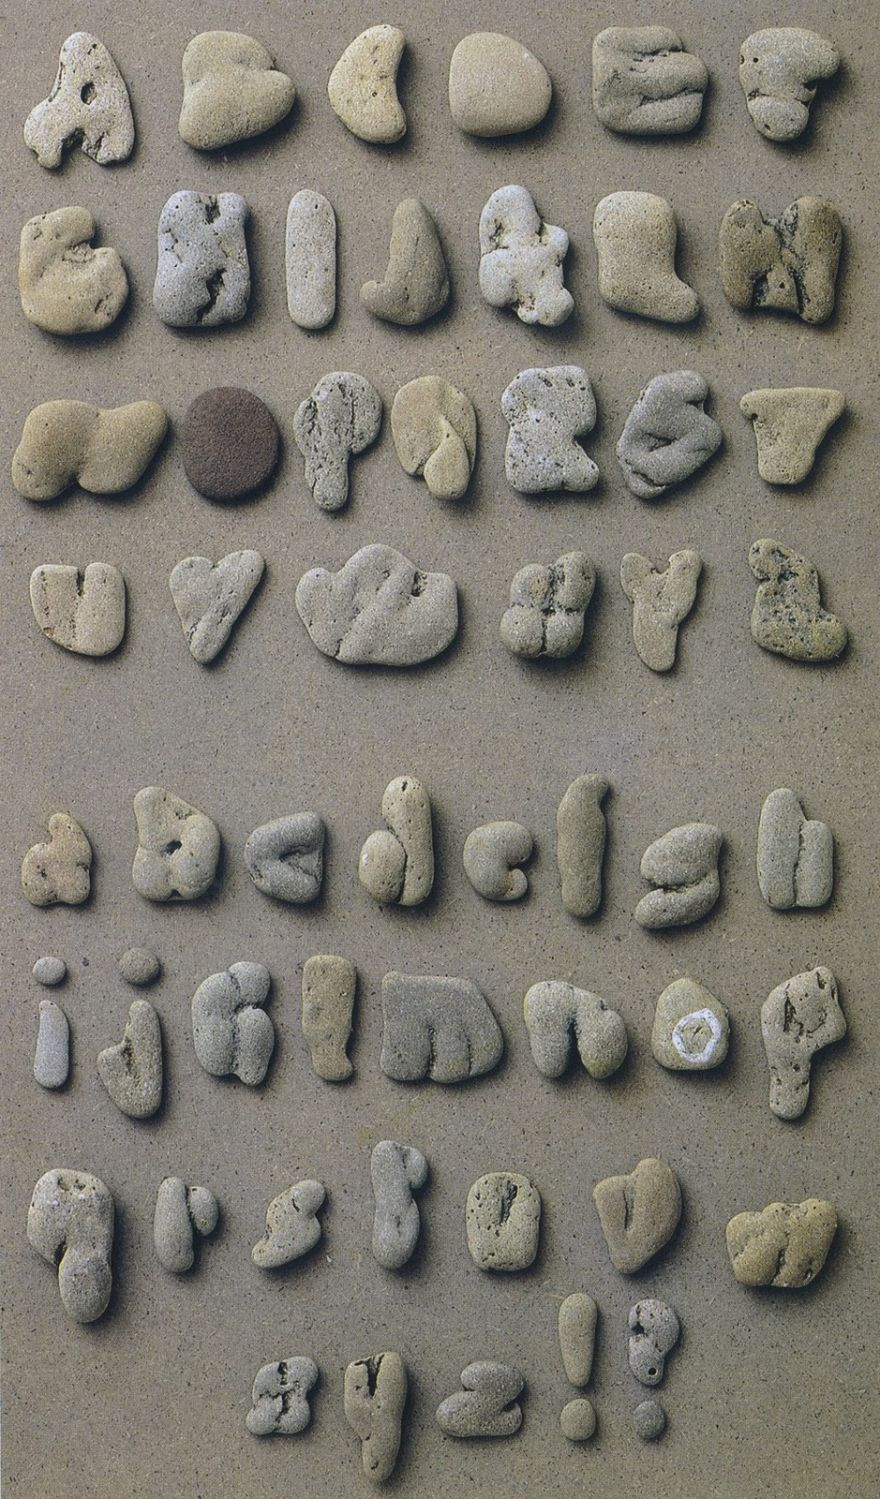 Don't Skip Rocks. Collect Stone Alphabets